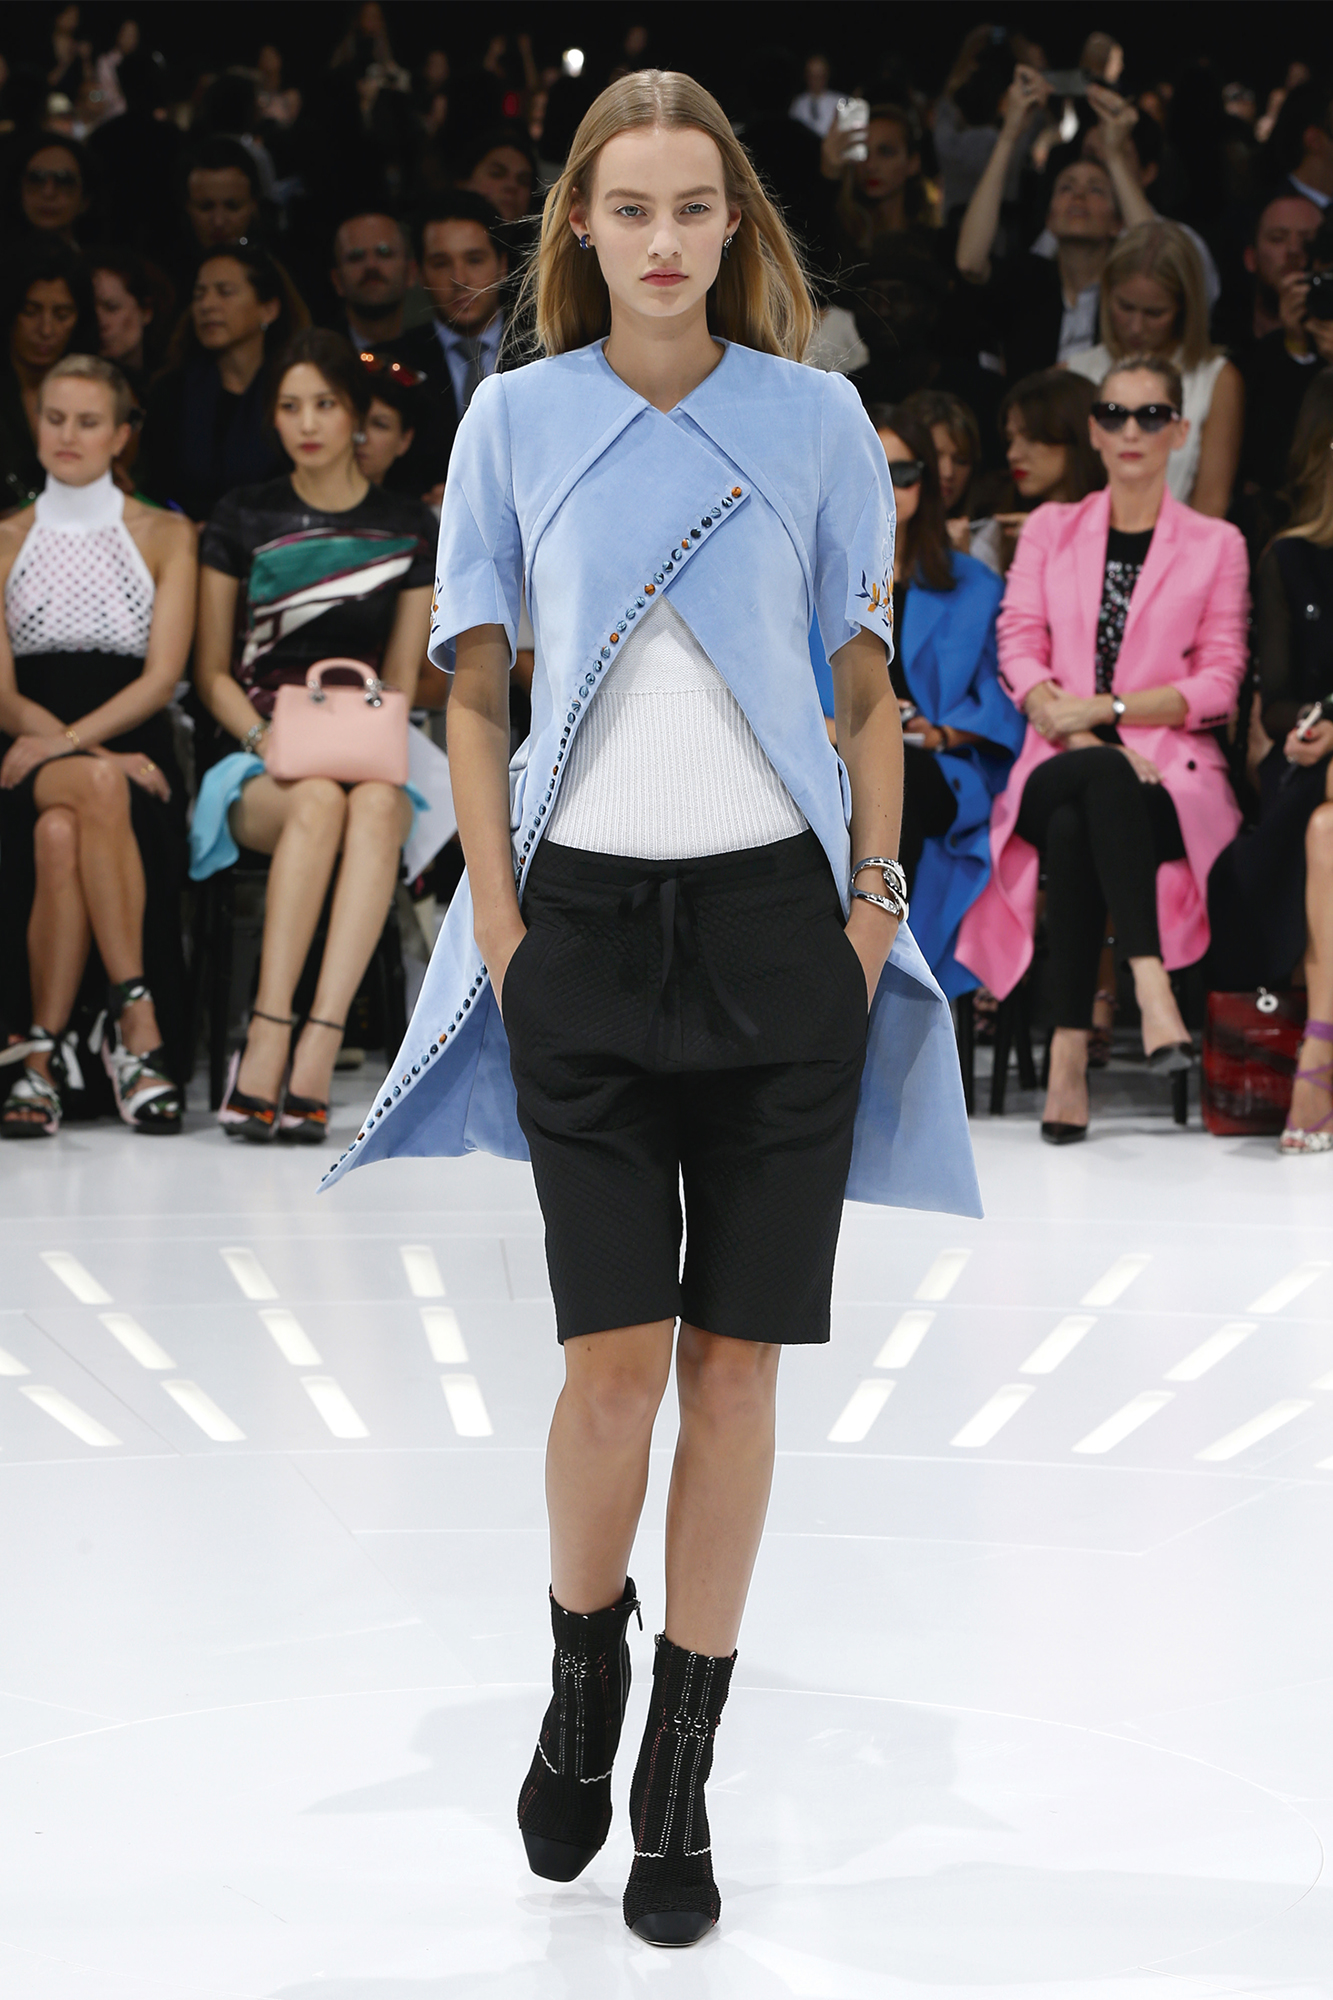 Christian Dior Haute Couture Spring-Summer Ready To Wear Dresses & Accessories Collection 2015-16 (27)